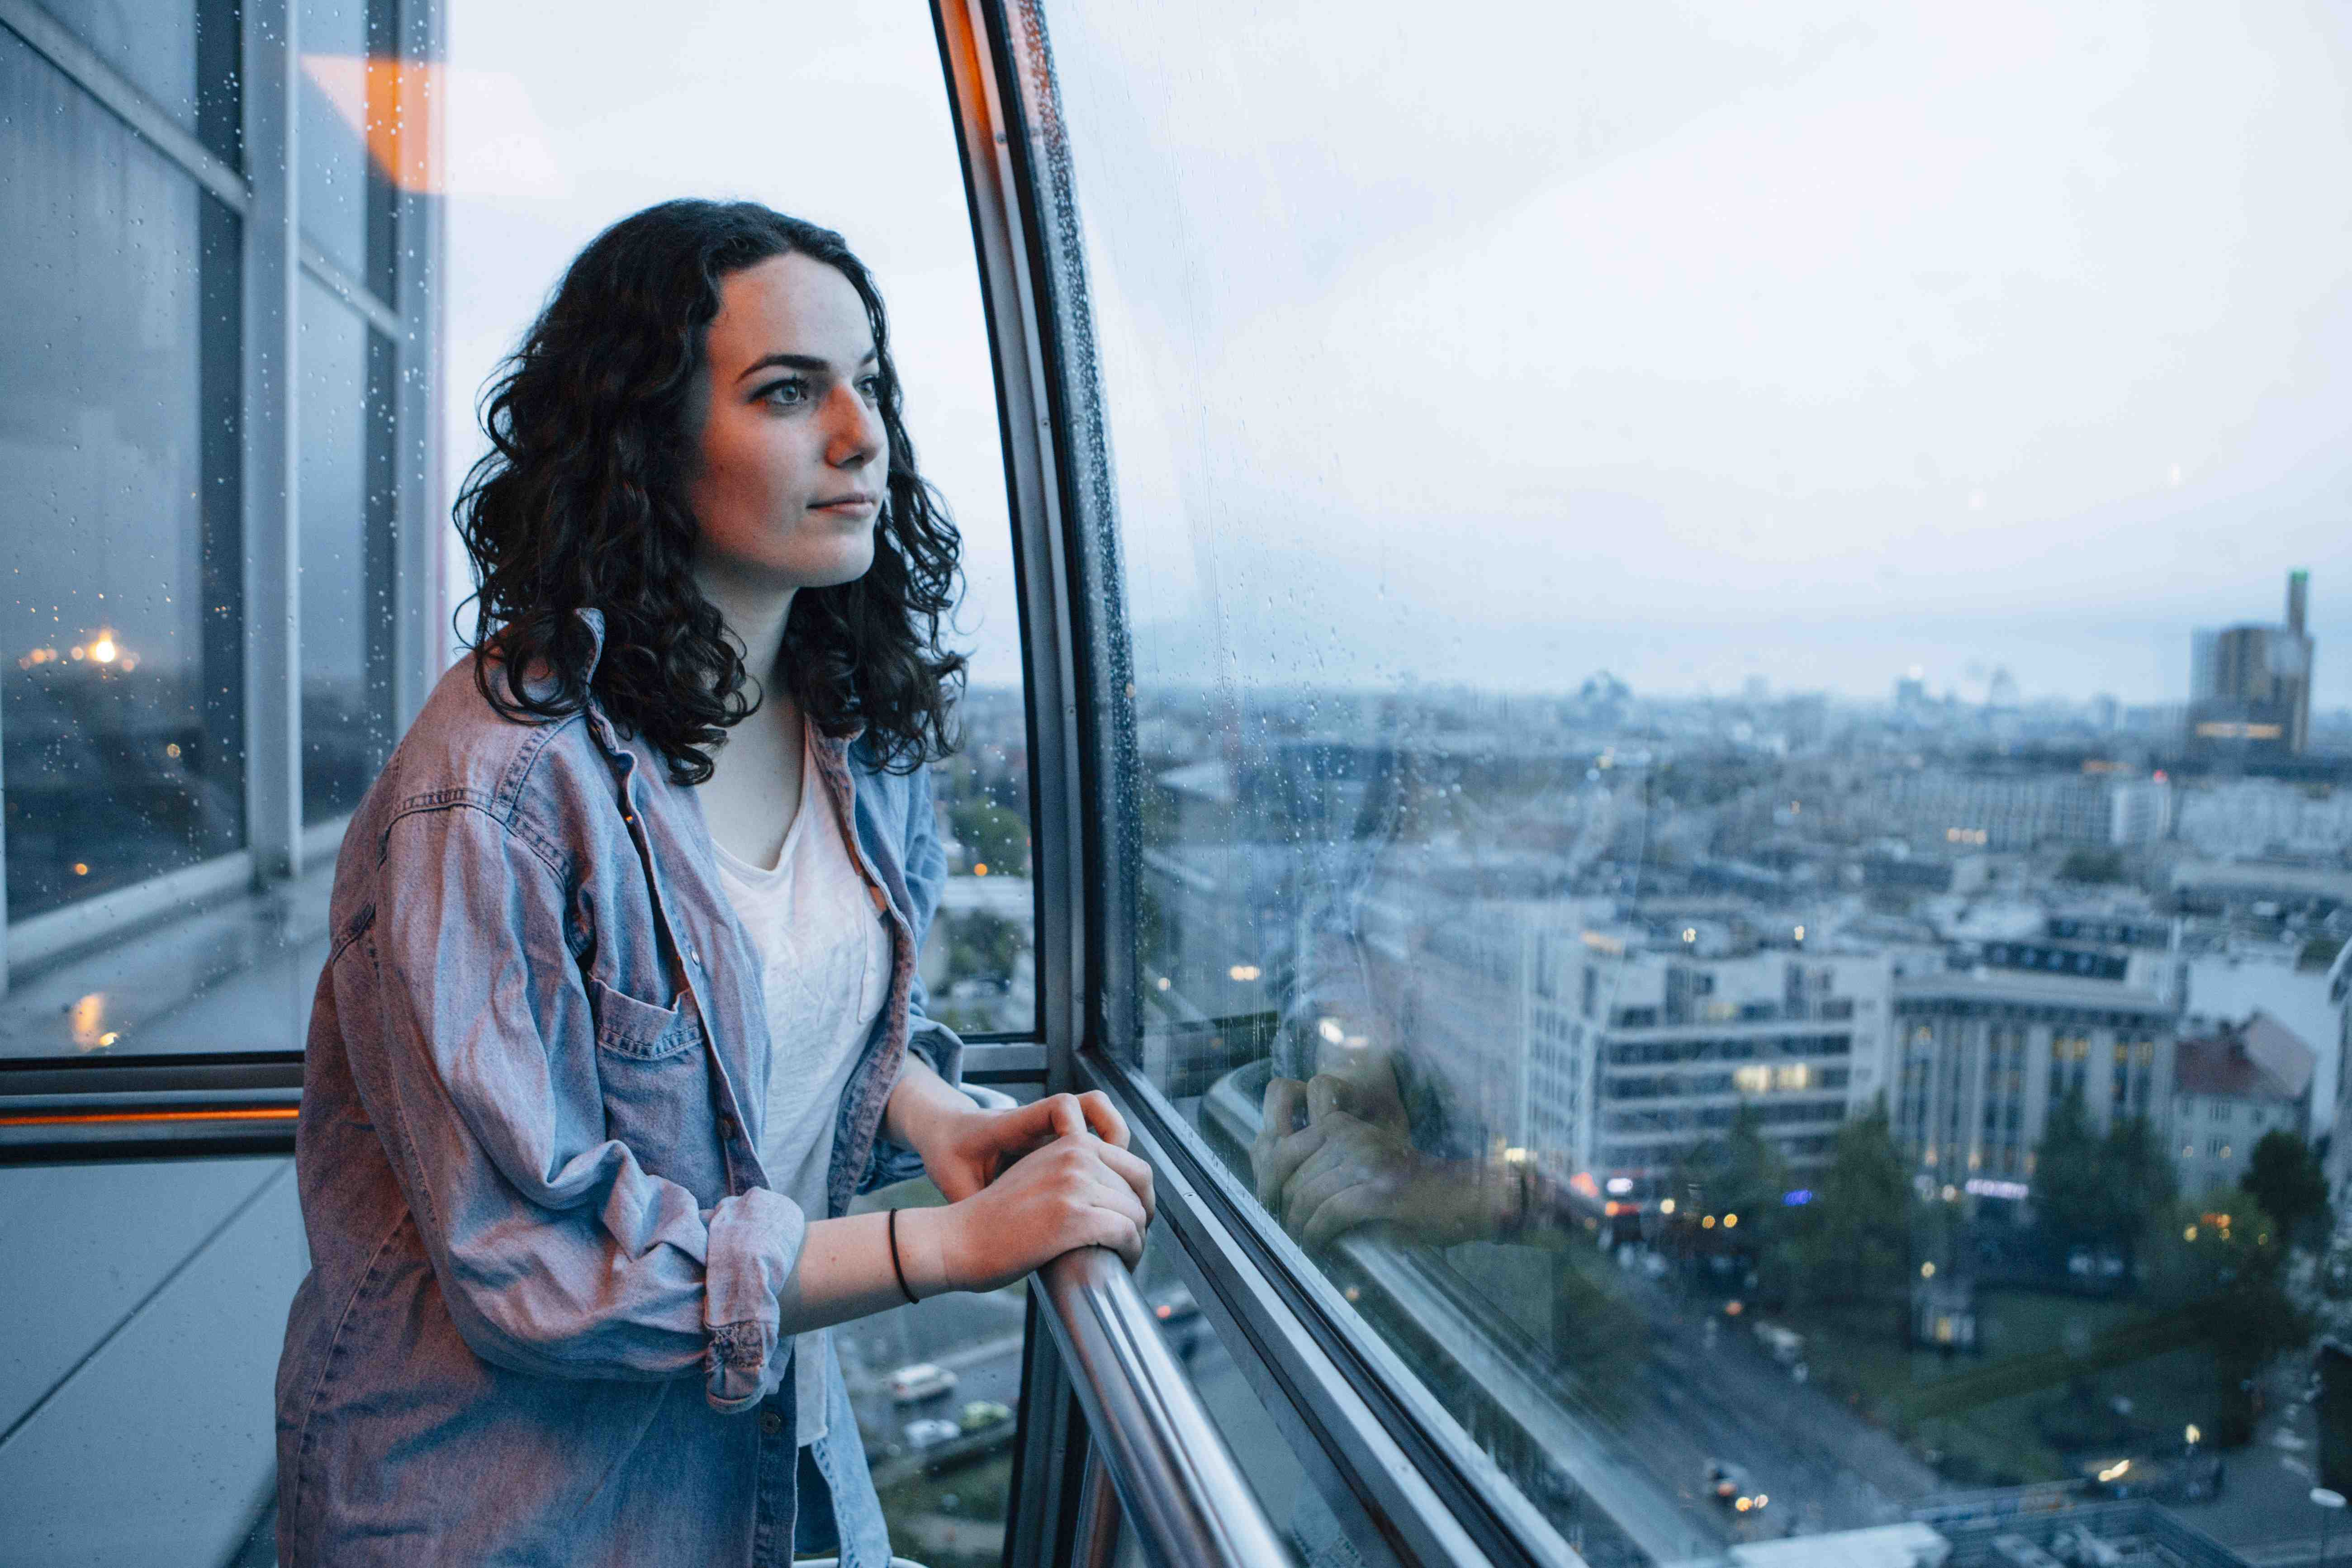 woman stands in futuristic glass elevator looks at skyline